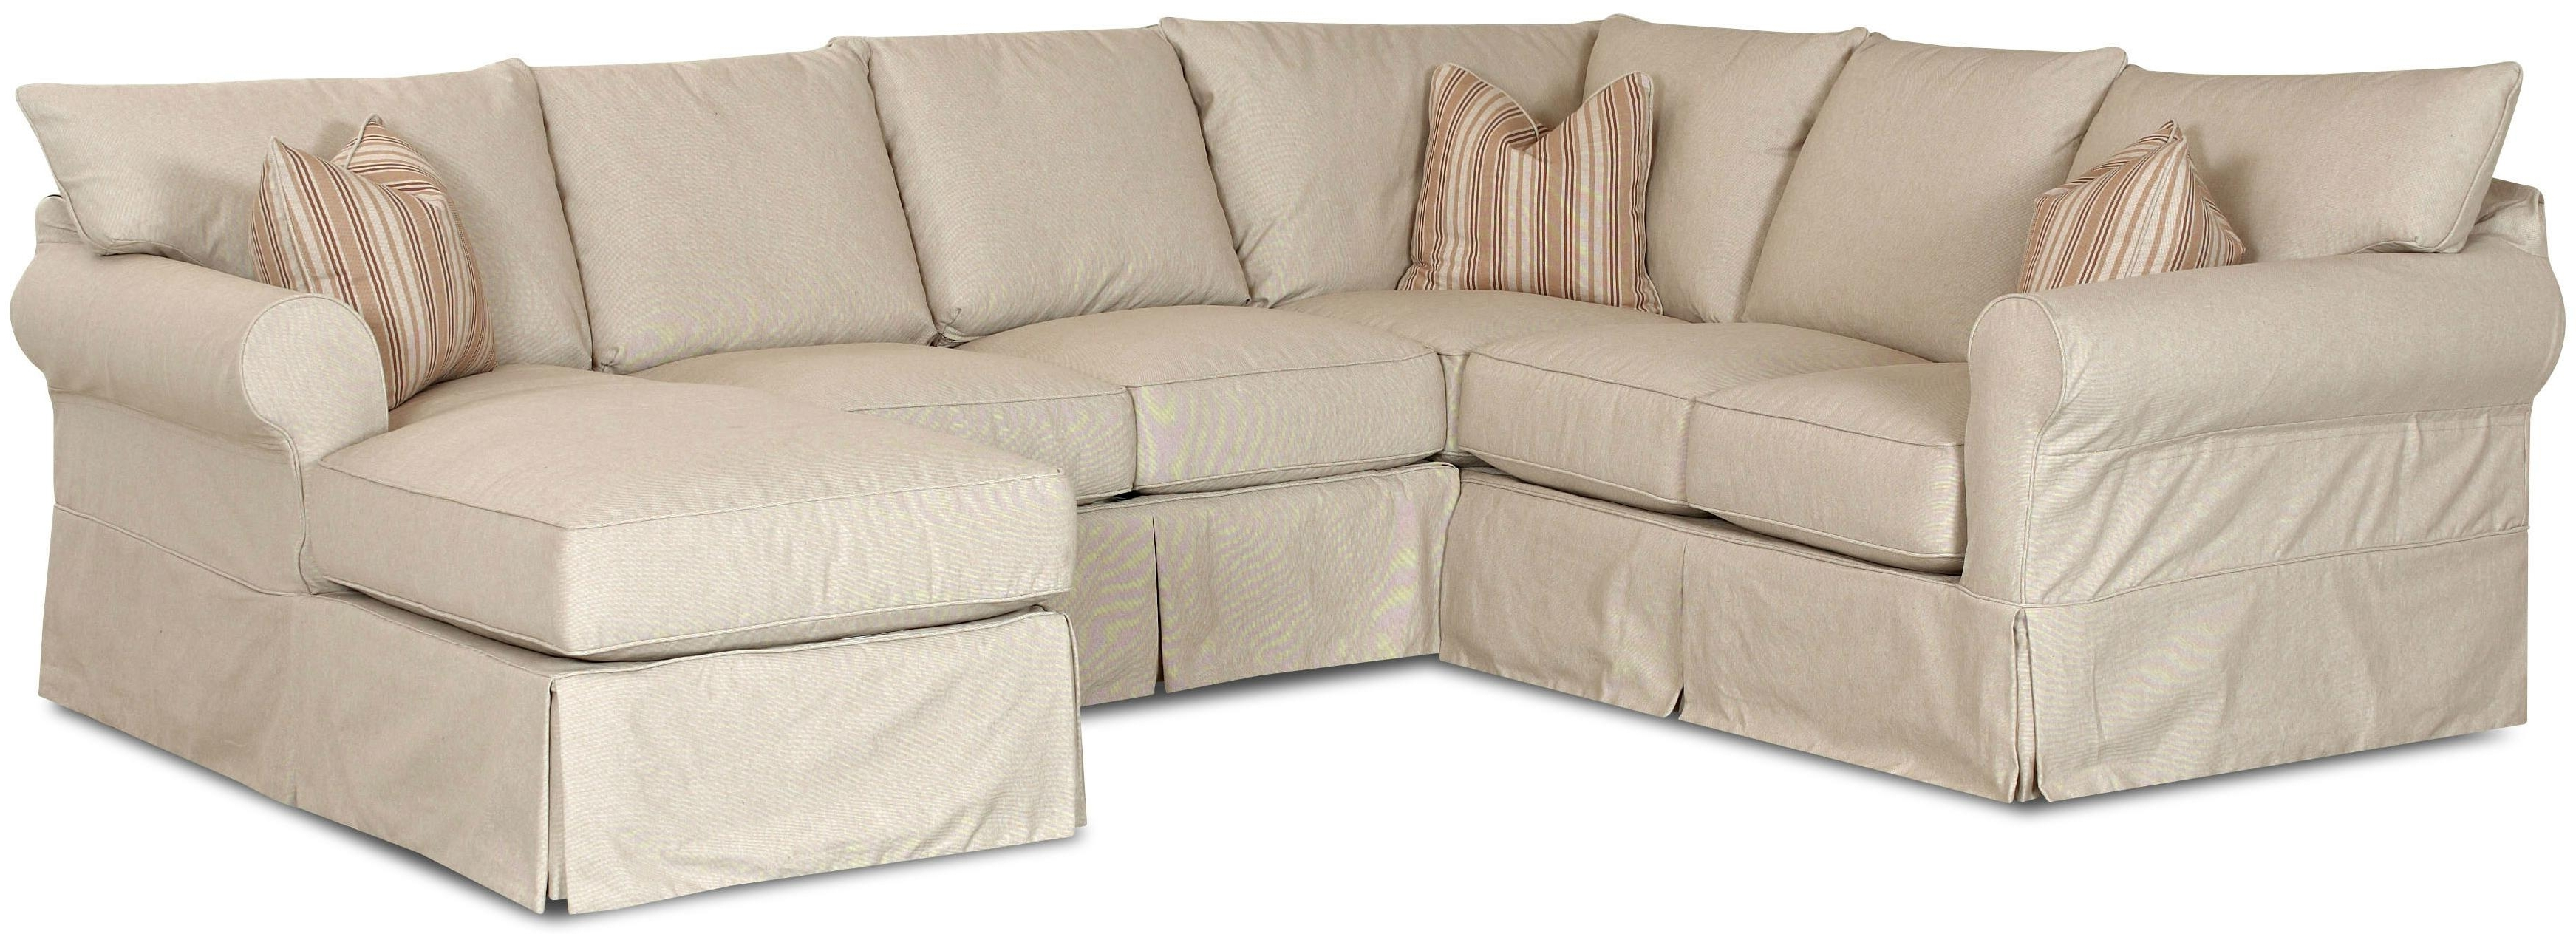 Most Current Furniture: White Couch Slipcovers Target For Home Furniture Ideas Inside Target Sectional Sofas (View 7 of 20)